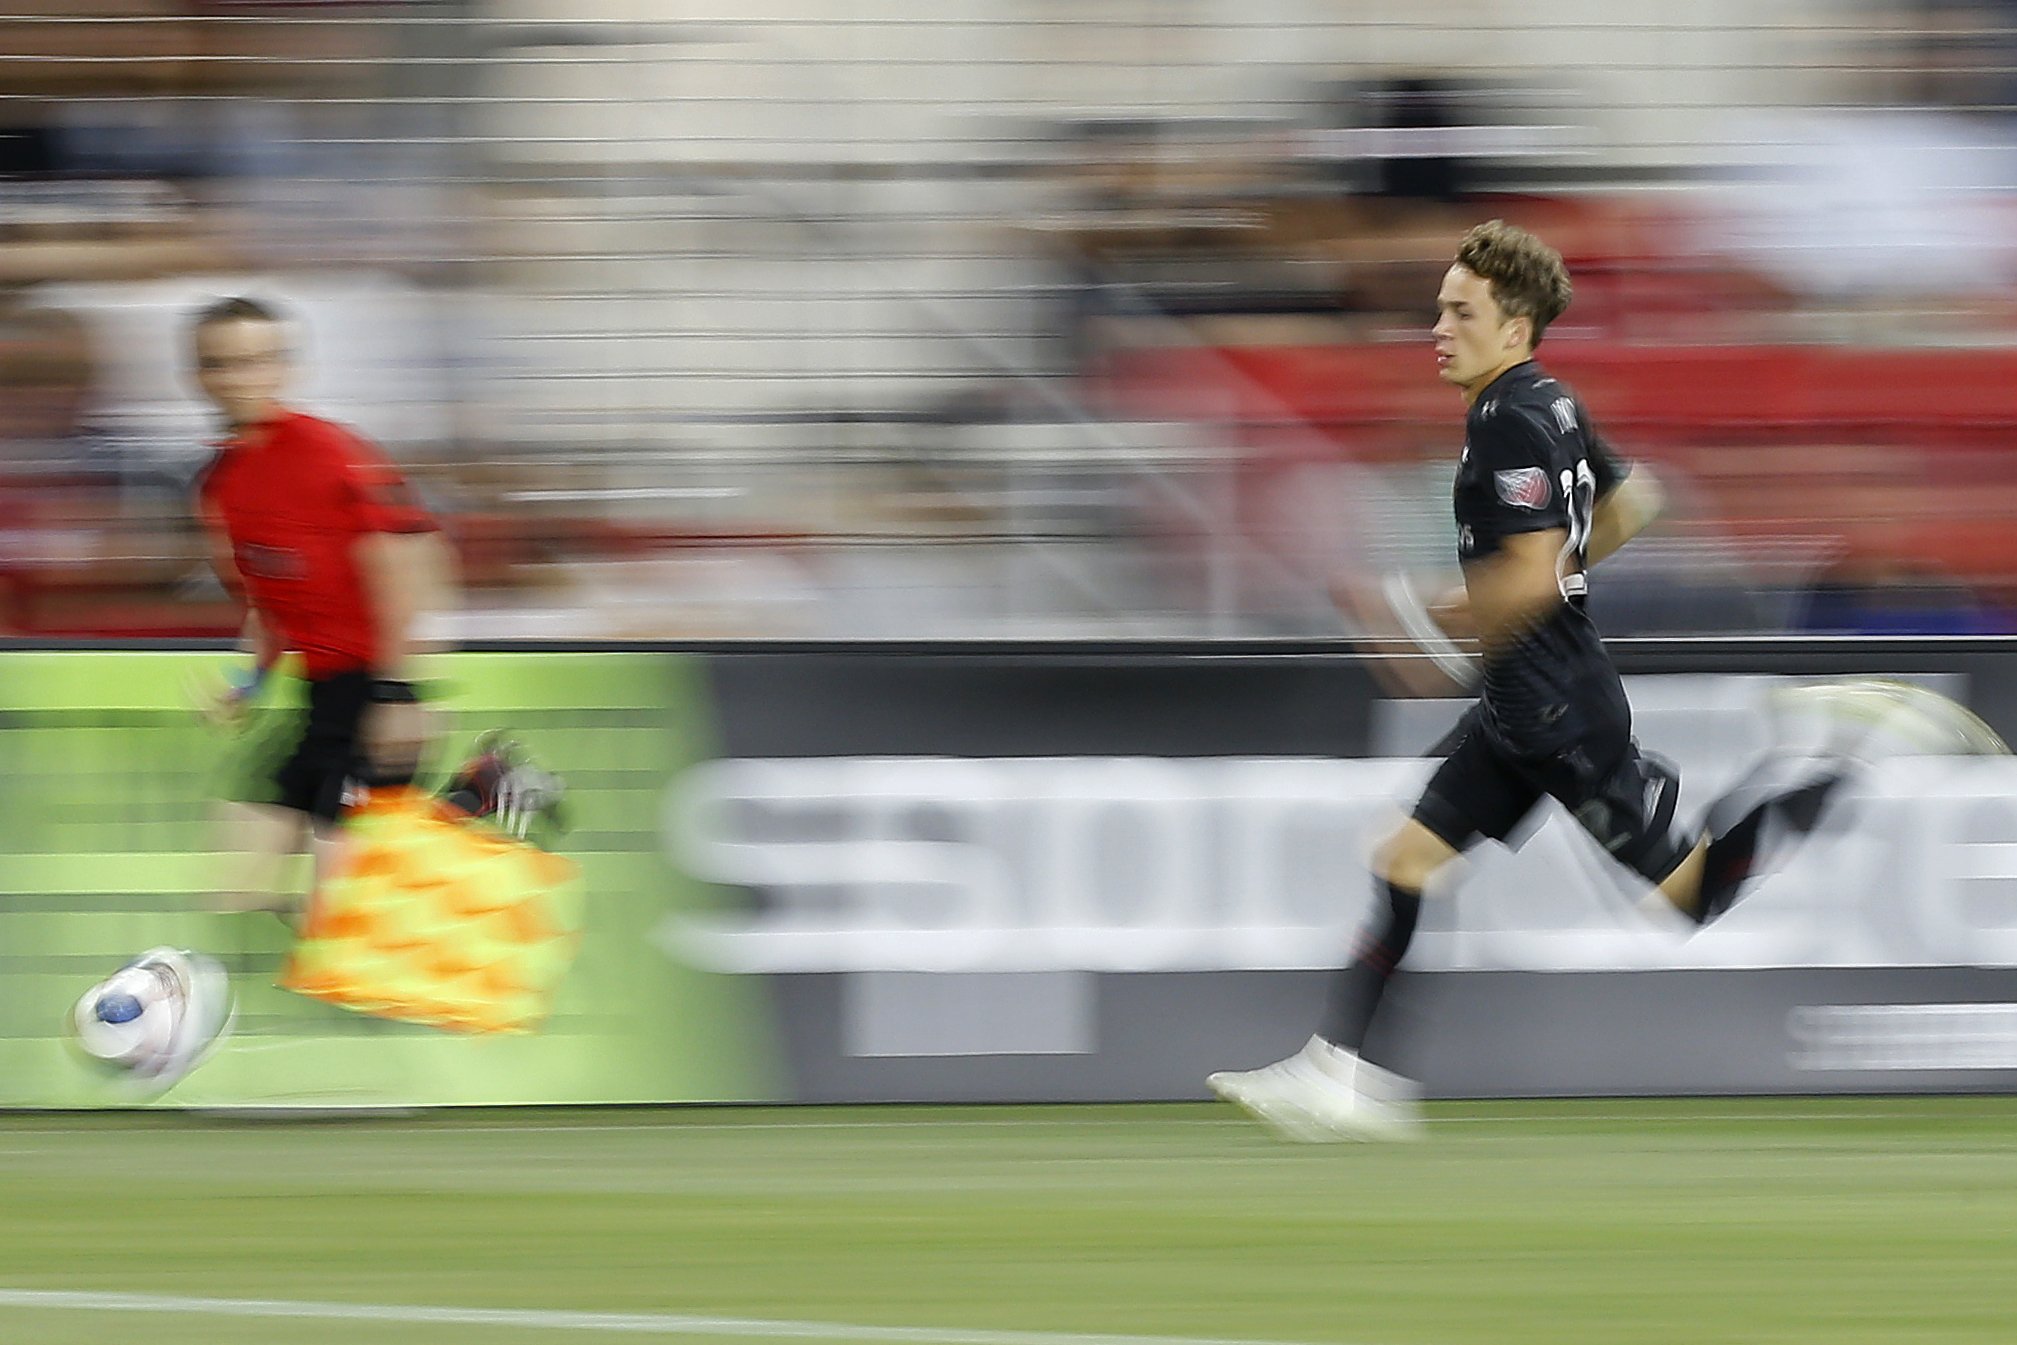 MLS: Friendly-Real Betis at D.C. United